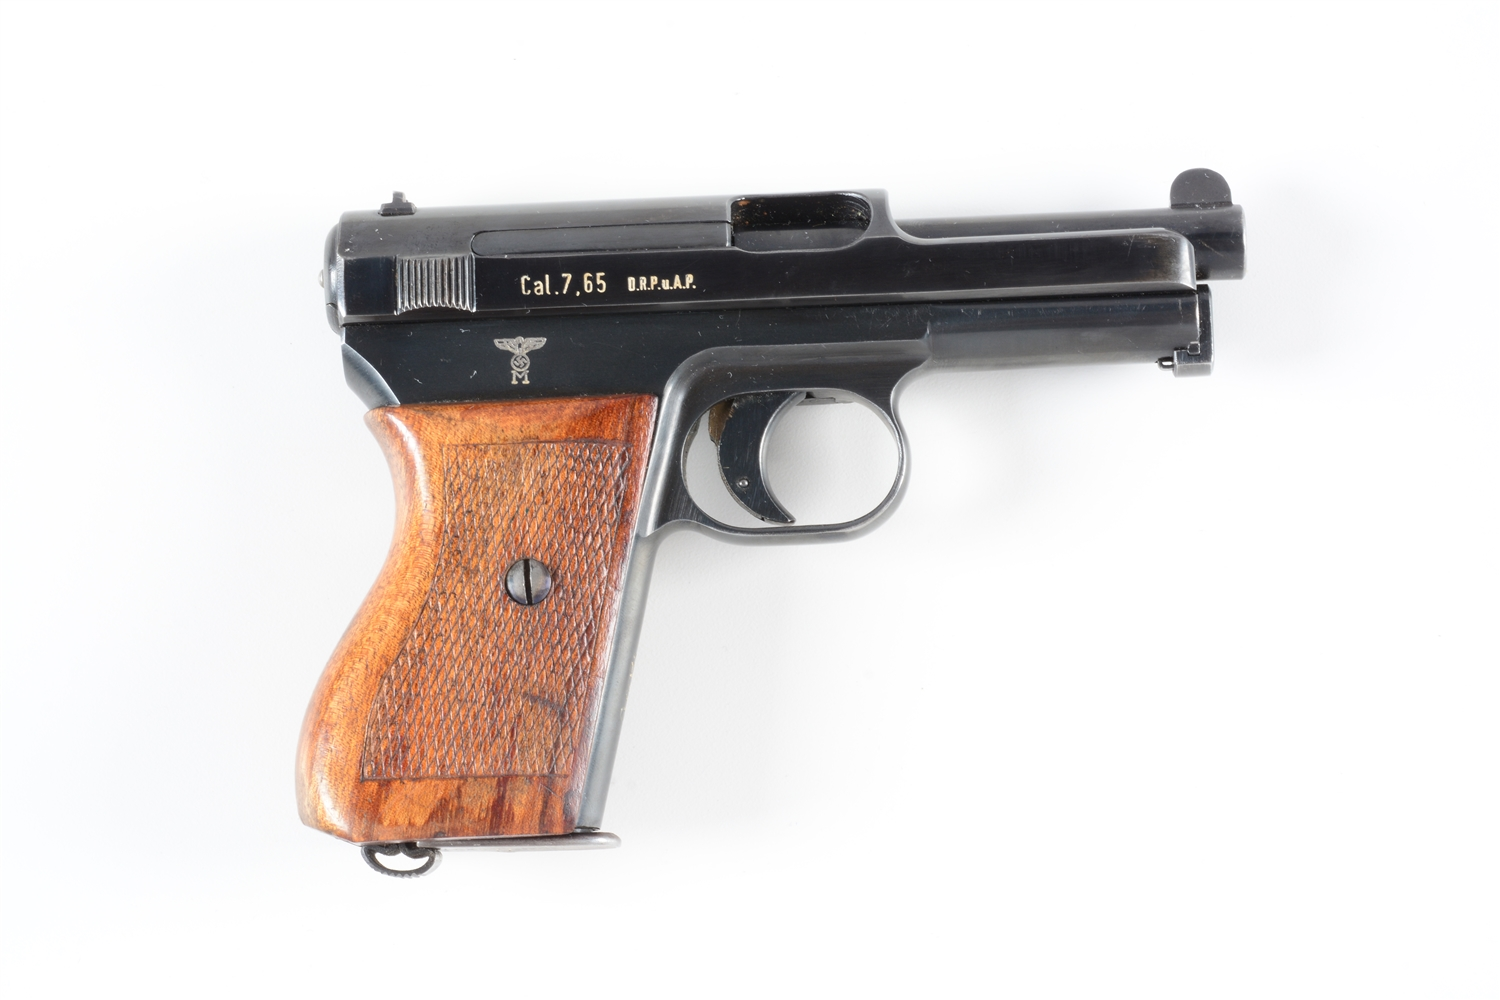 (C) SCARCE AND DESIRABLE MAUSER MODEL 1934 KRIEGSMARINE MARKED PISTOL.